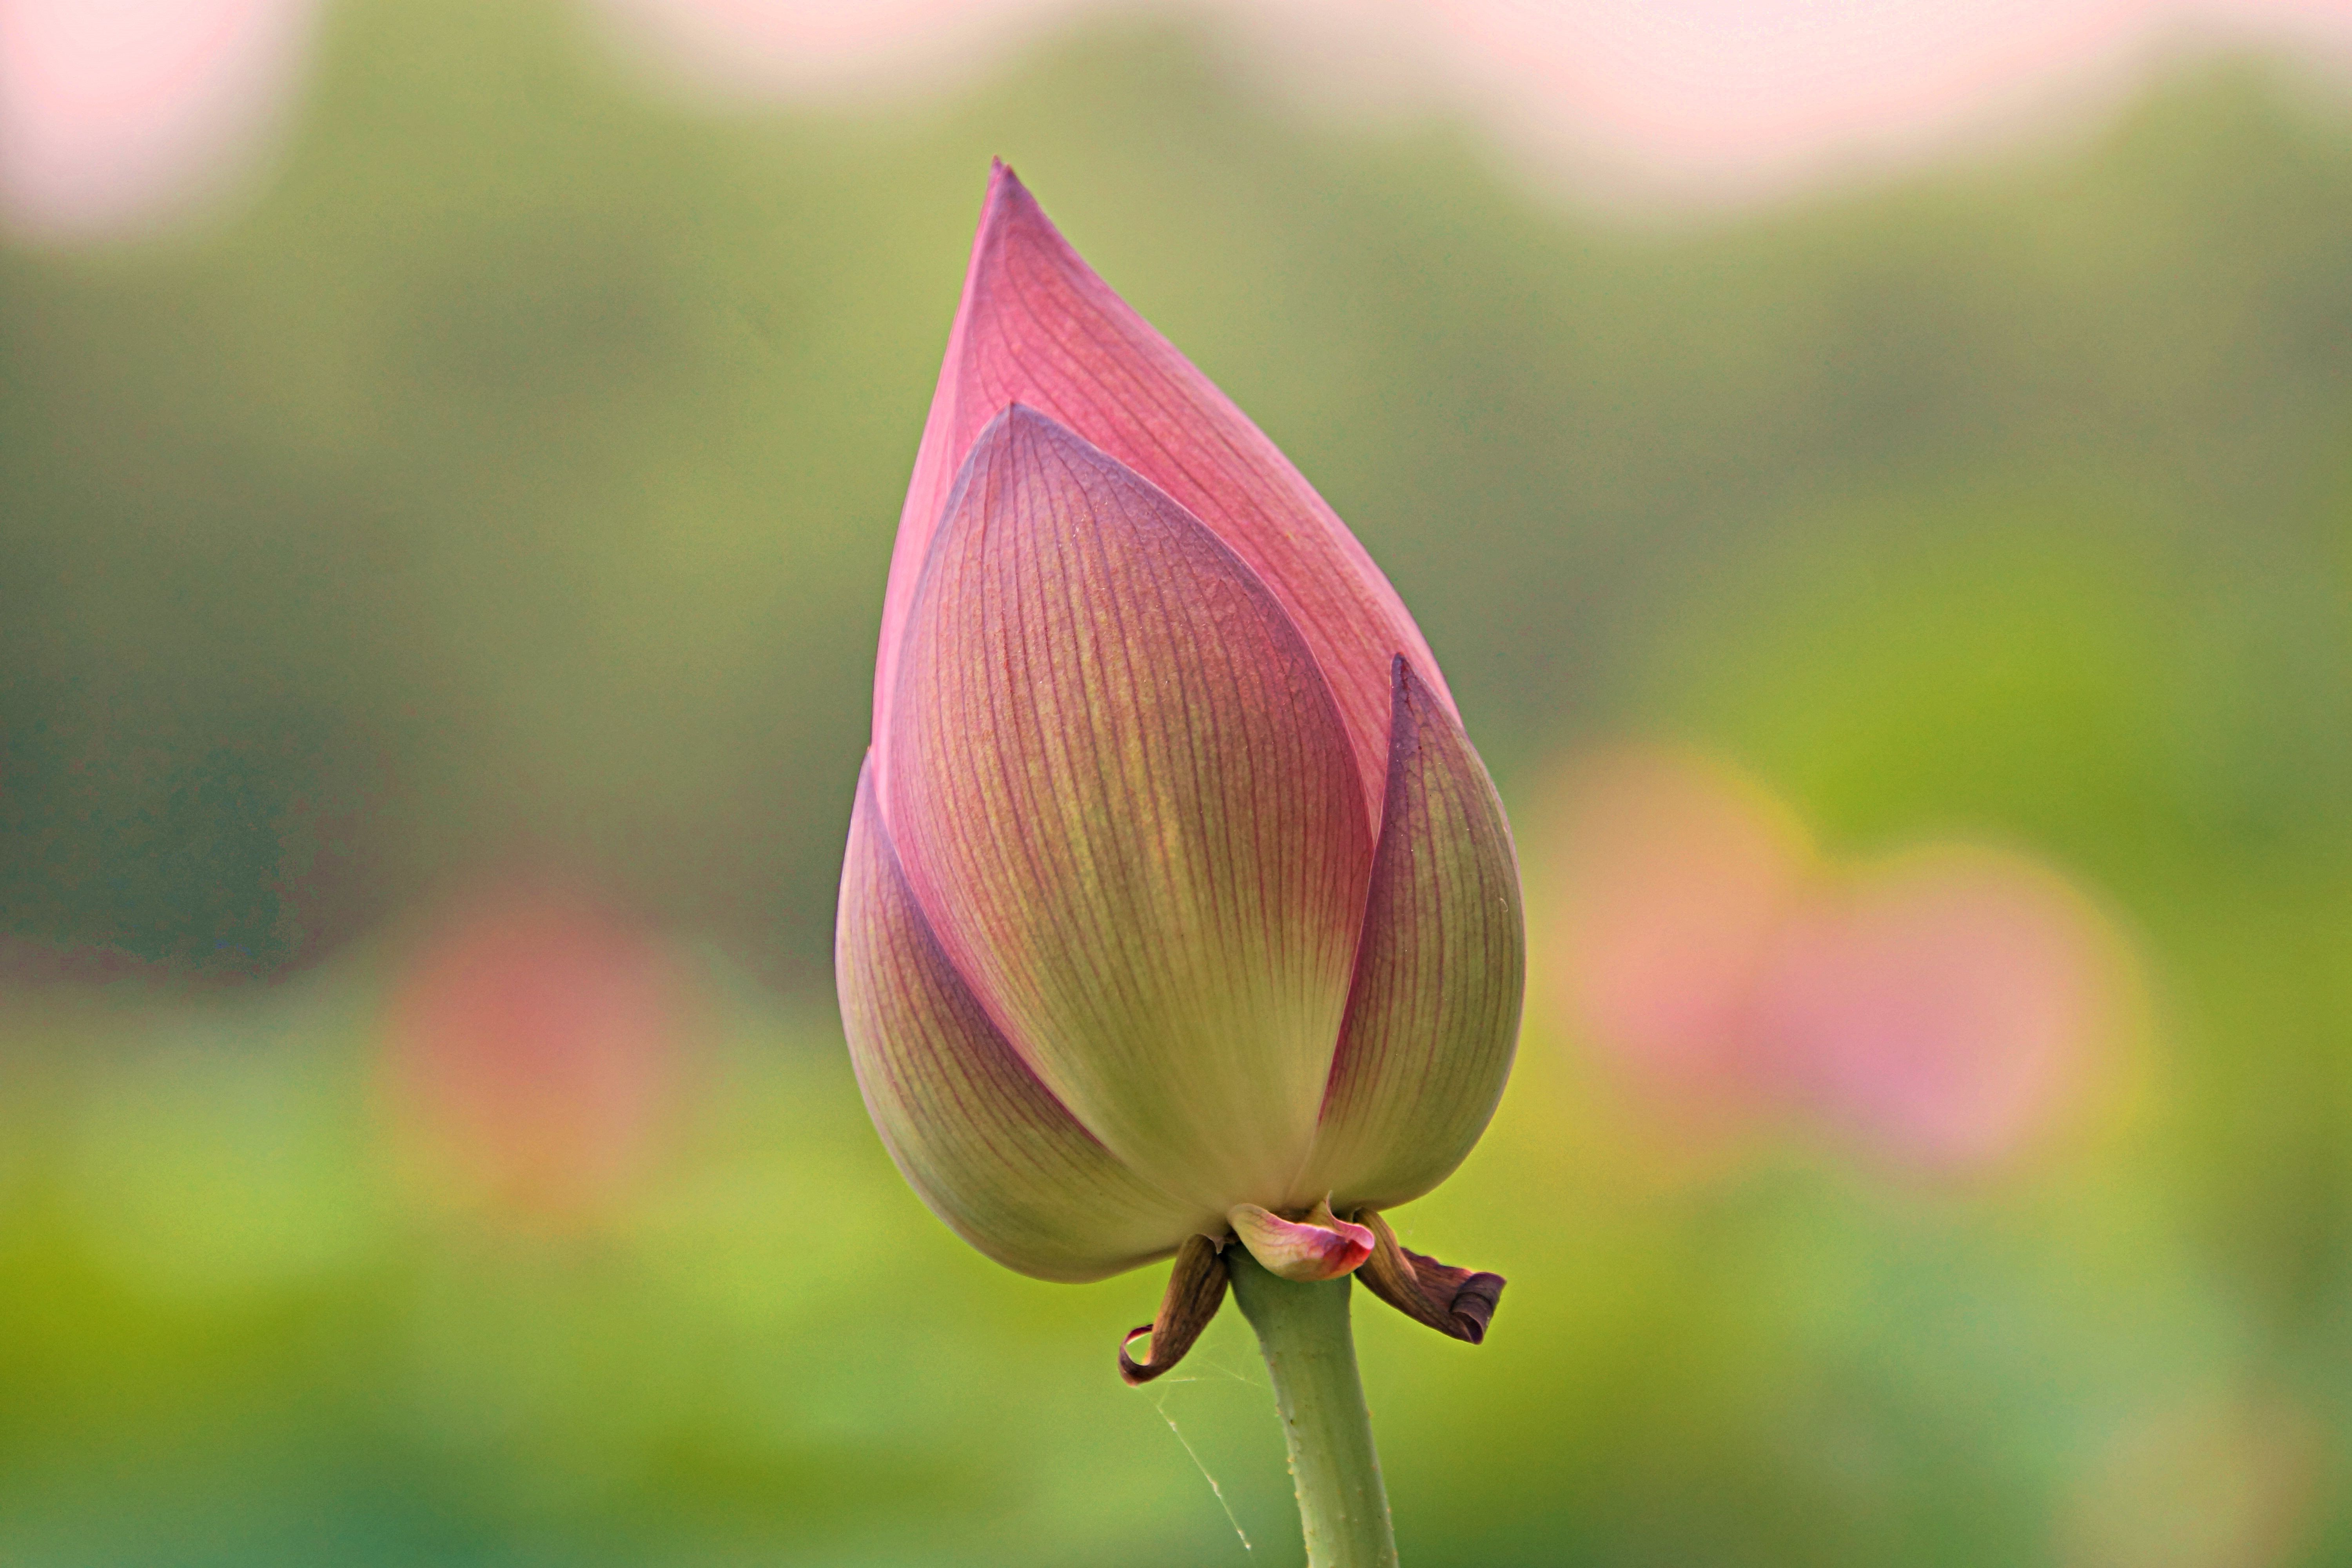 Lotus flower bud wallpaper 42 bloemen pinterest lotus flower lotus flower bud wallpaper 42 izmirmasajfo